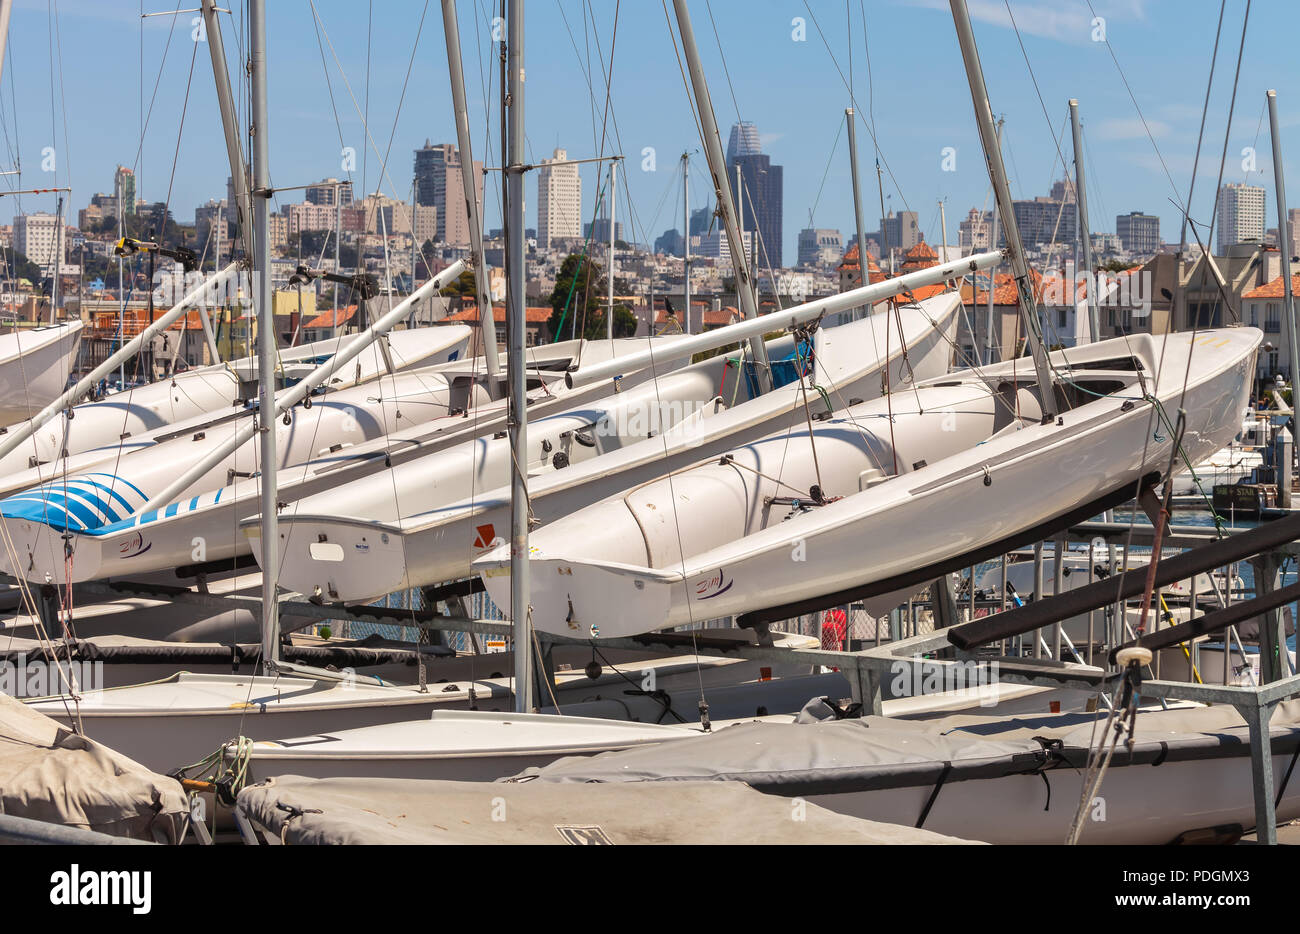 Sailboats on the rack at the Yacht Club in Marina, San Francisco, California, with the city in the background. - Stock Image